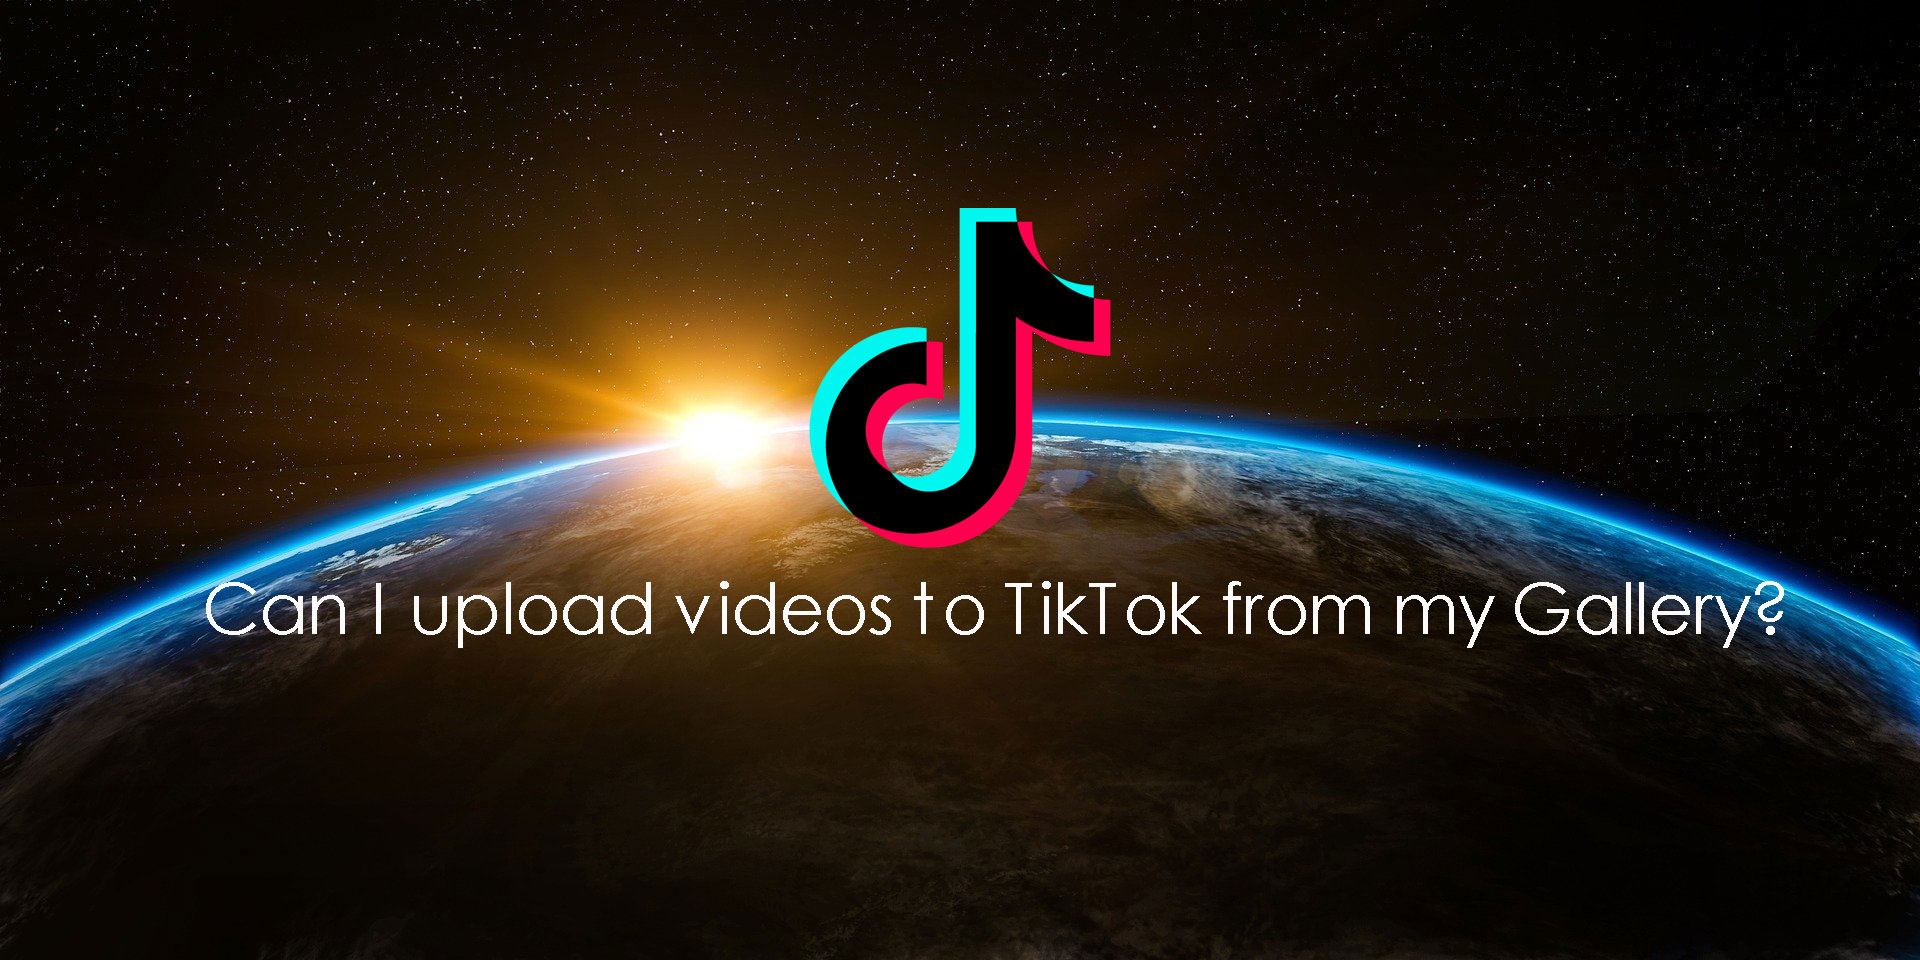 Can-I-upload-videos-to-TikTok-from-my-Gallery-banner